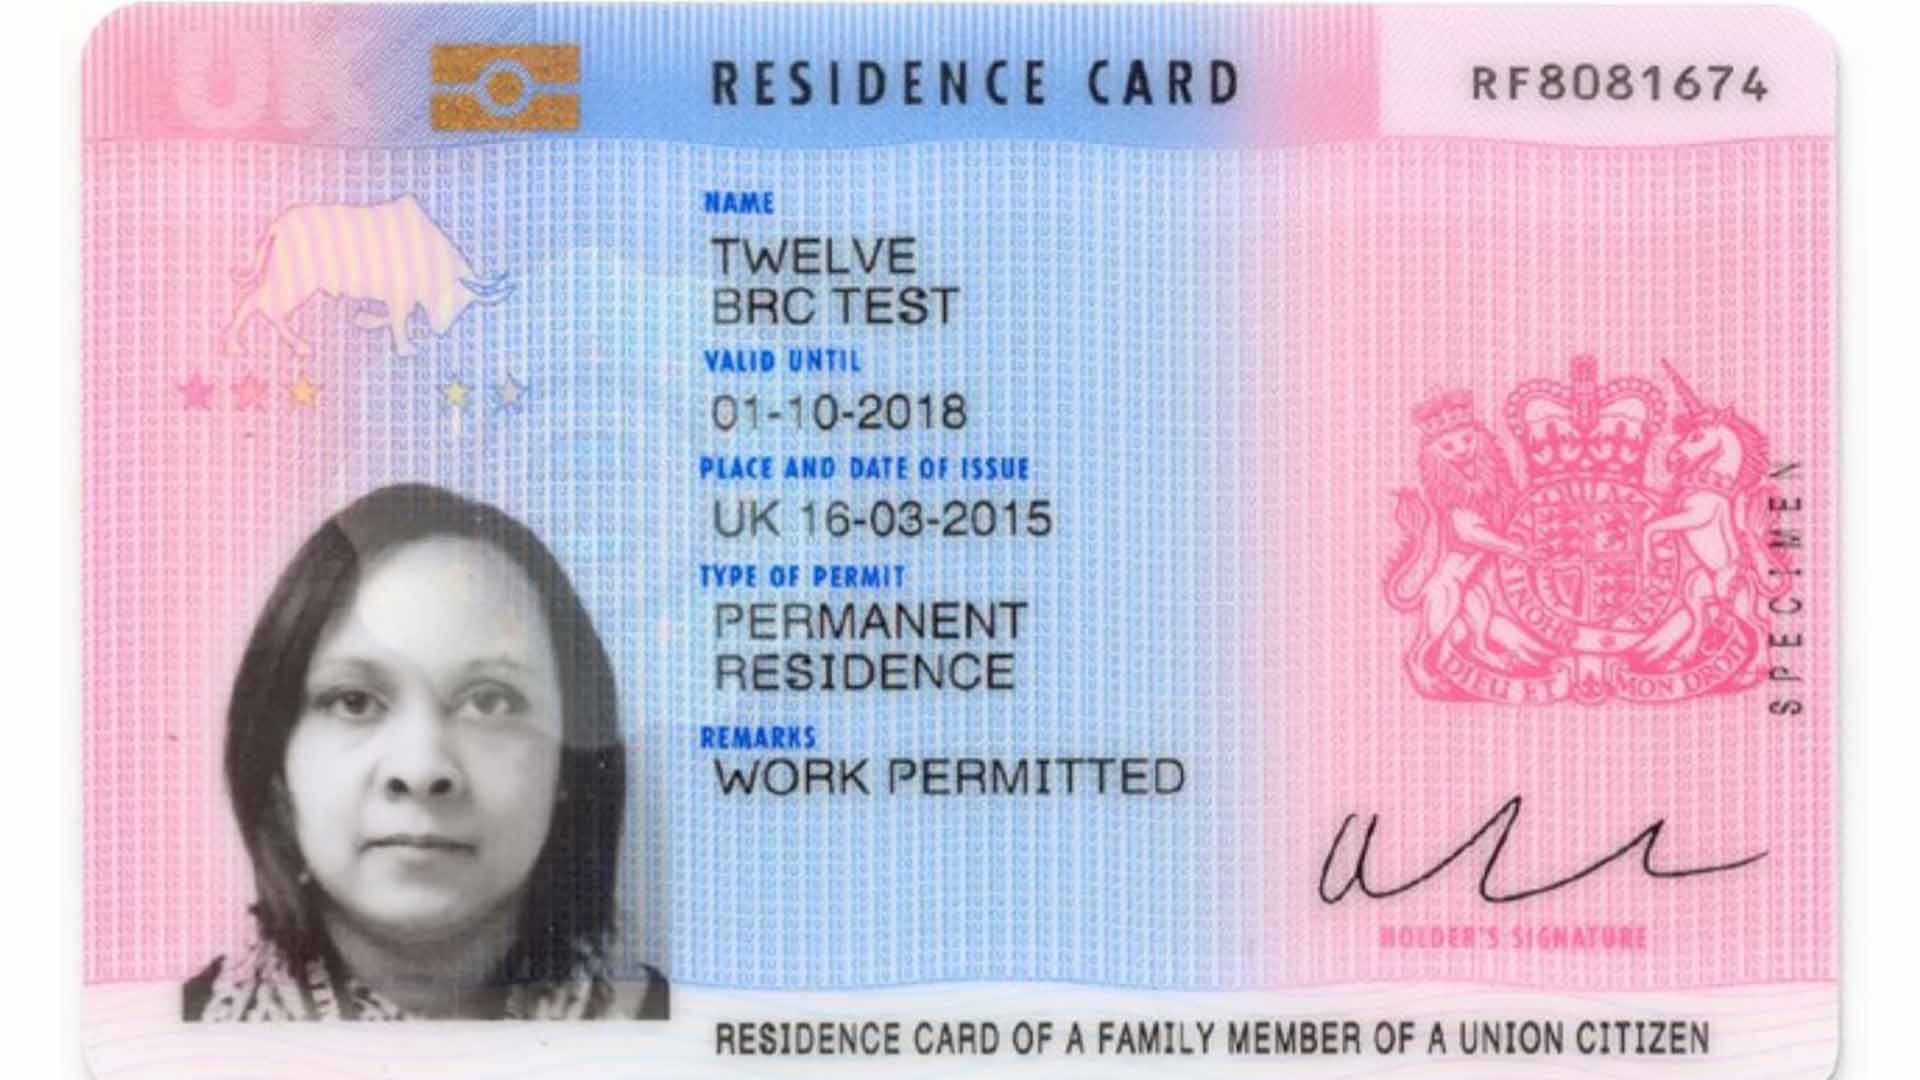 The Biometric Residence Permit Transition Guide